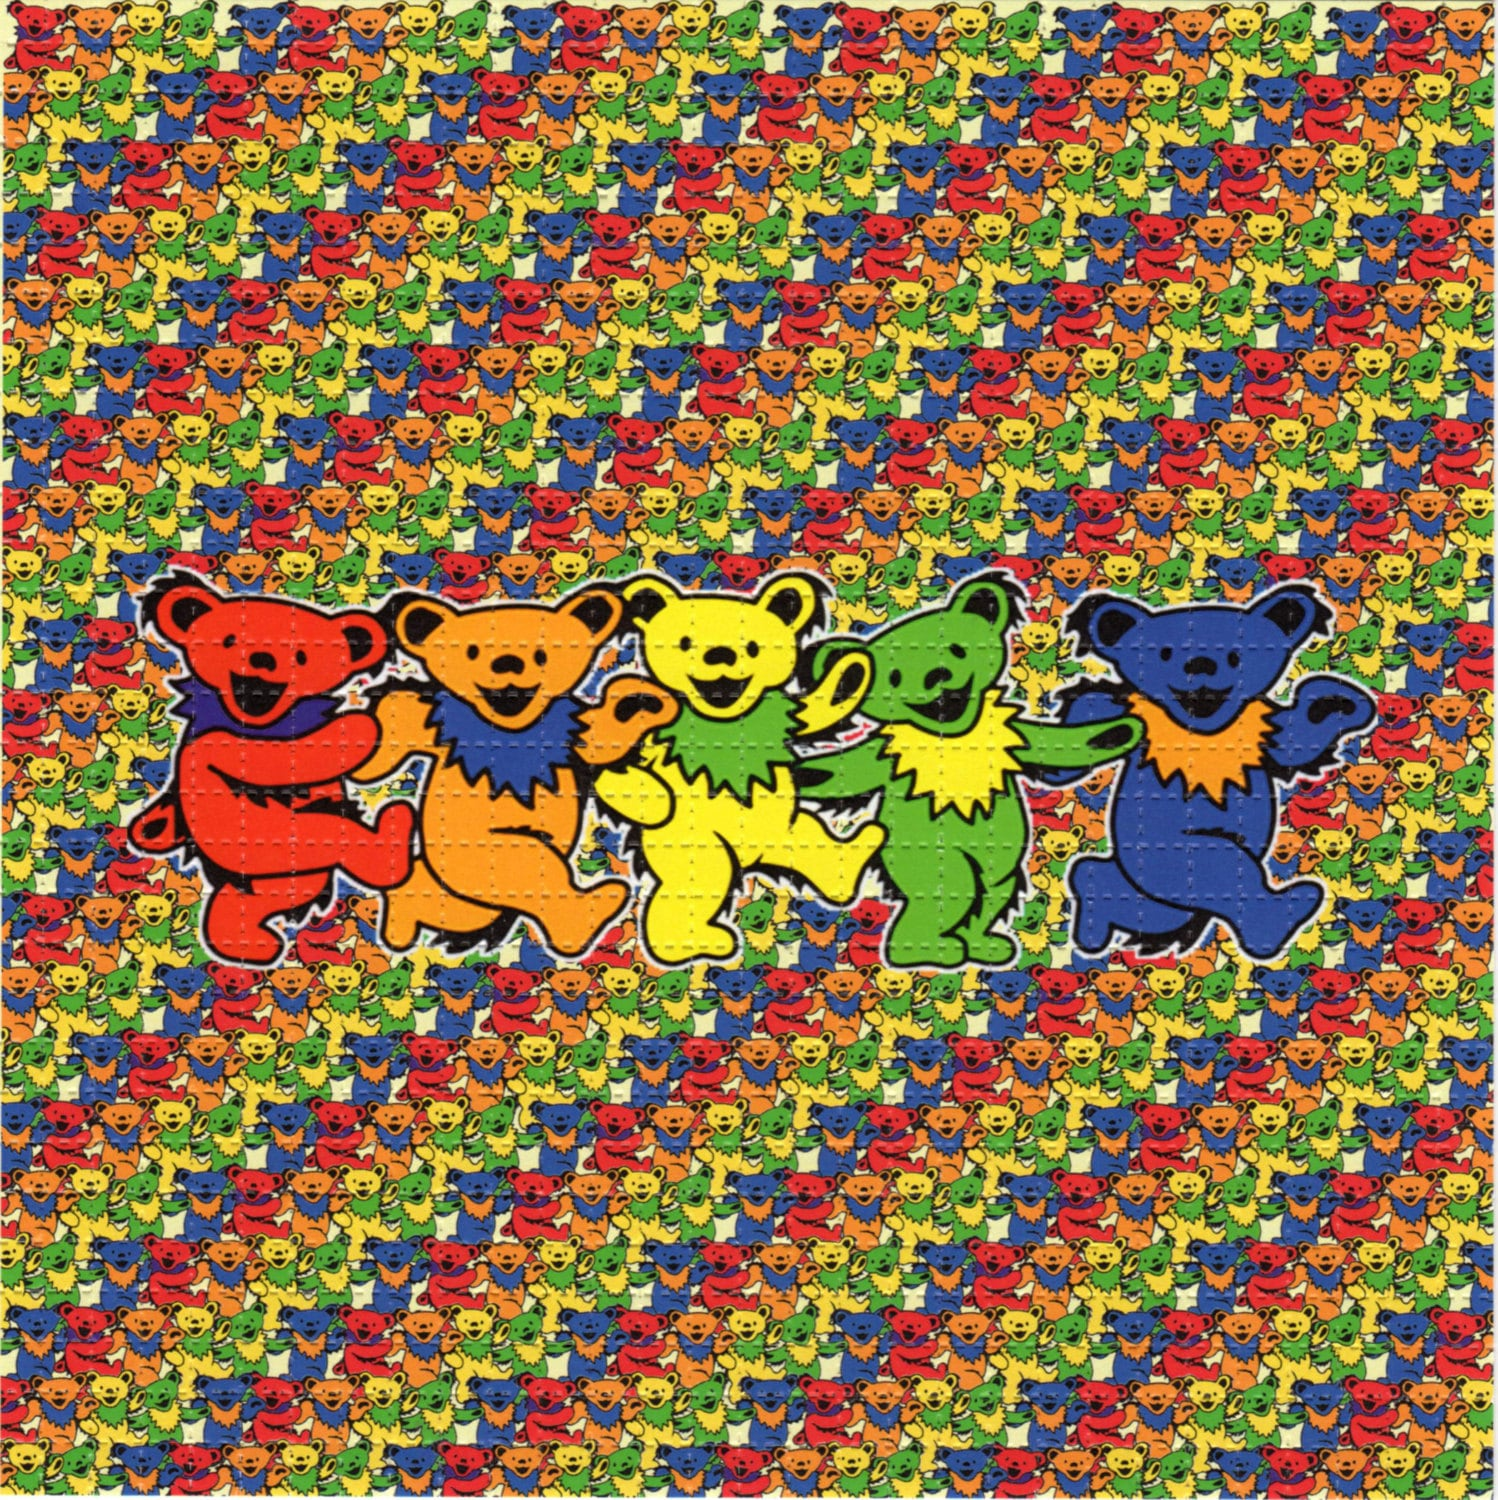 Grateful Dead Dancing Bear Family BLOTTER ART perforated | Etsy